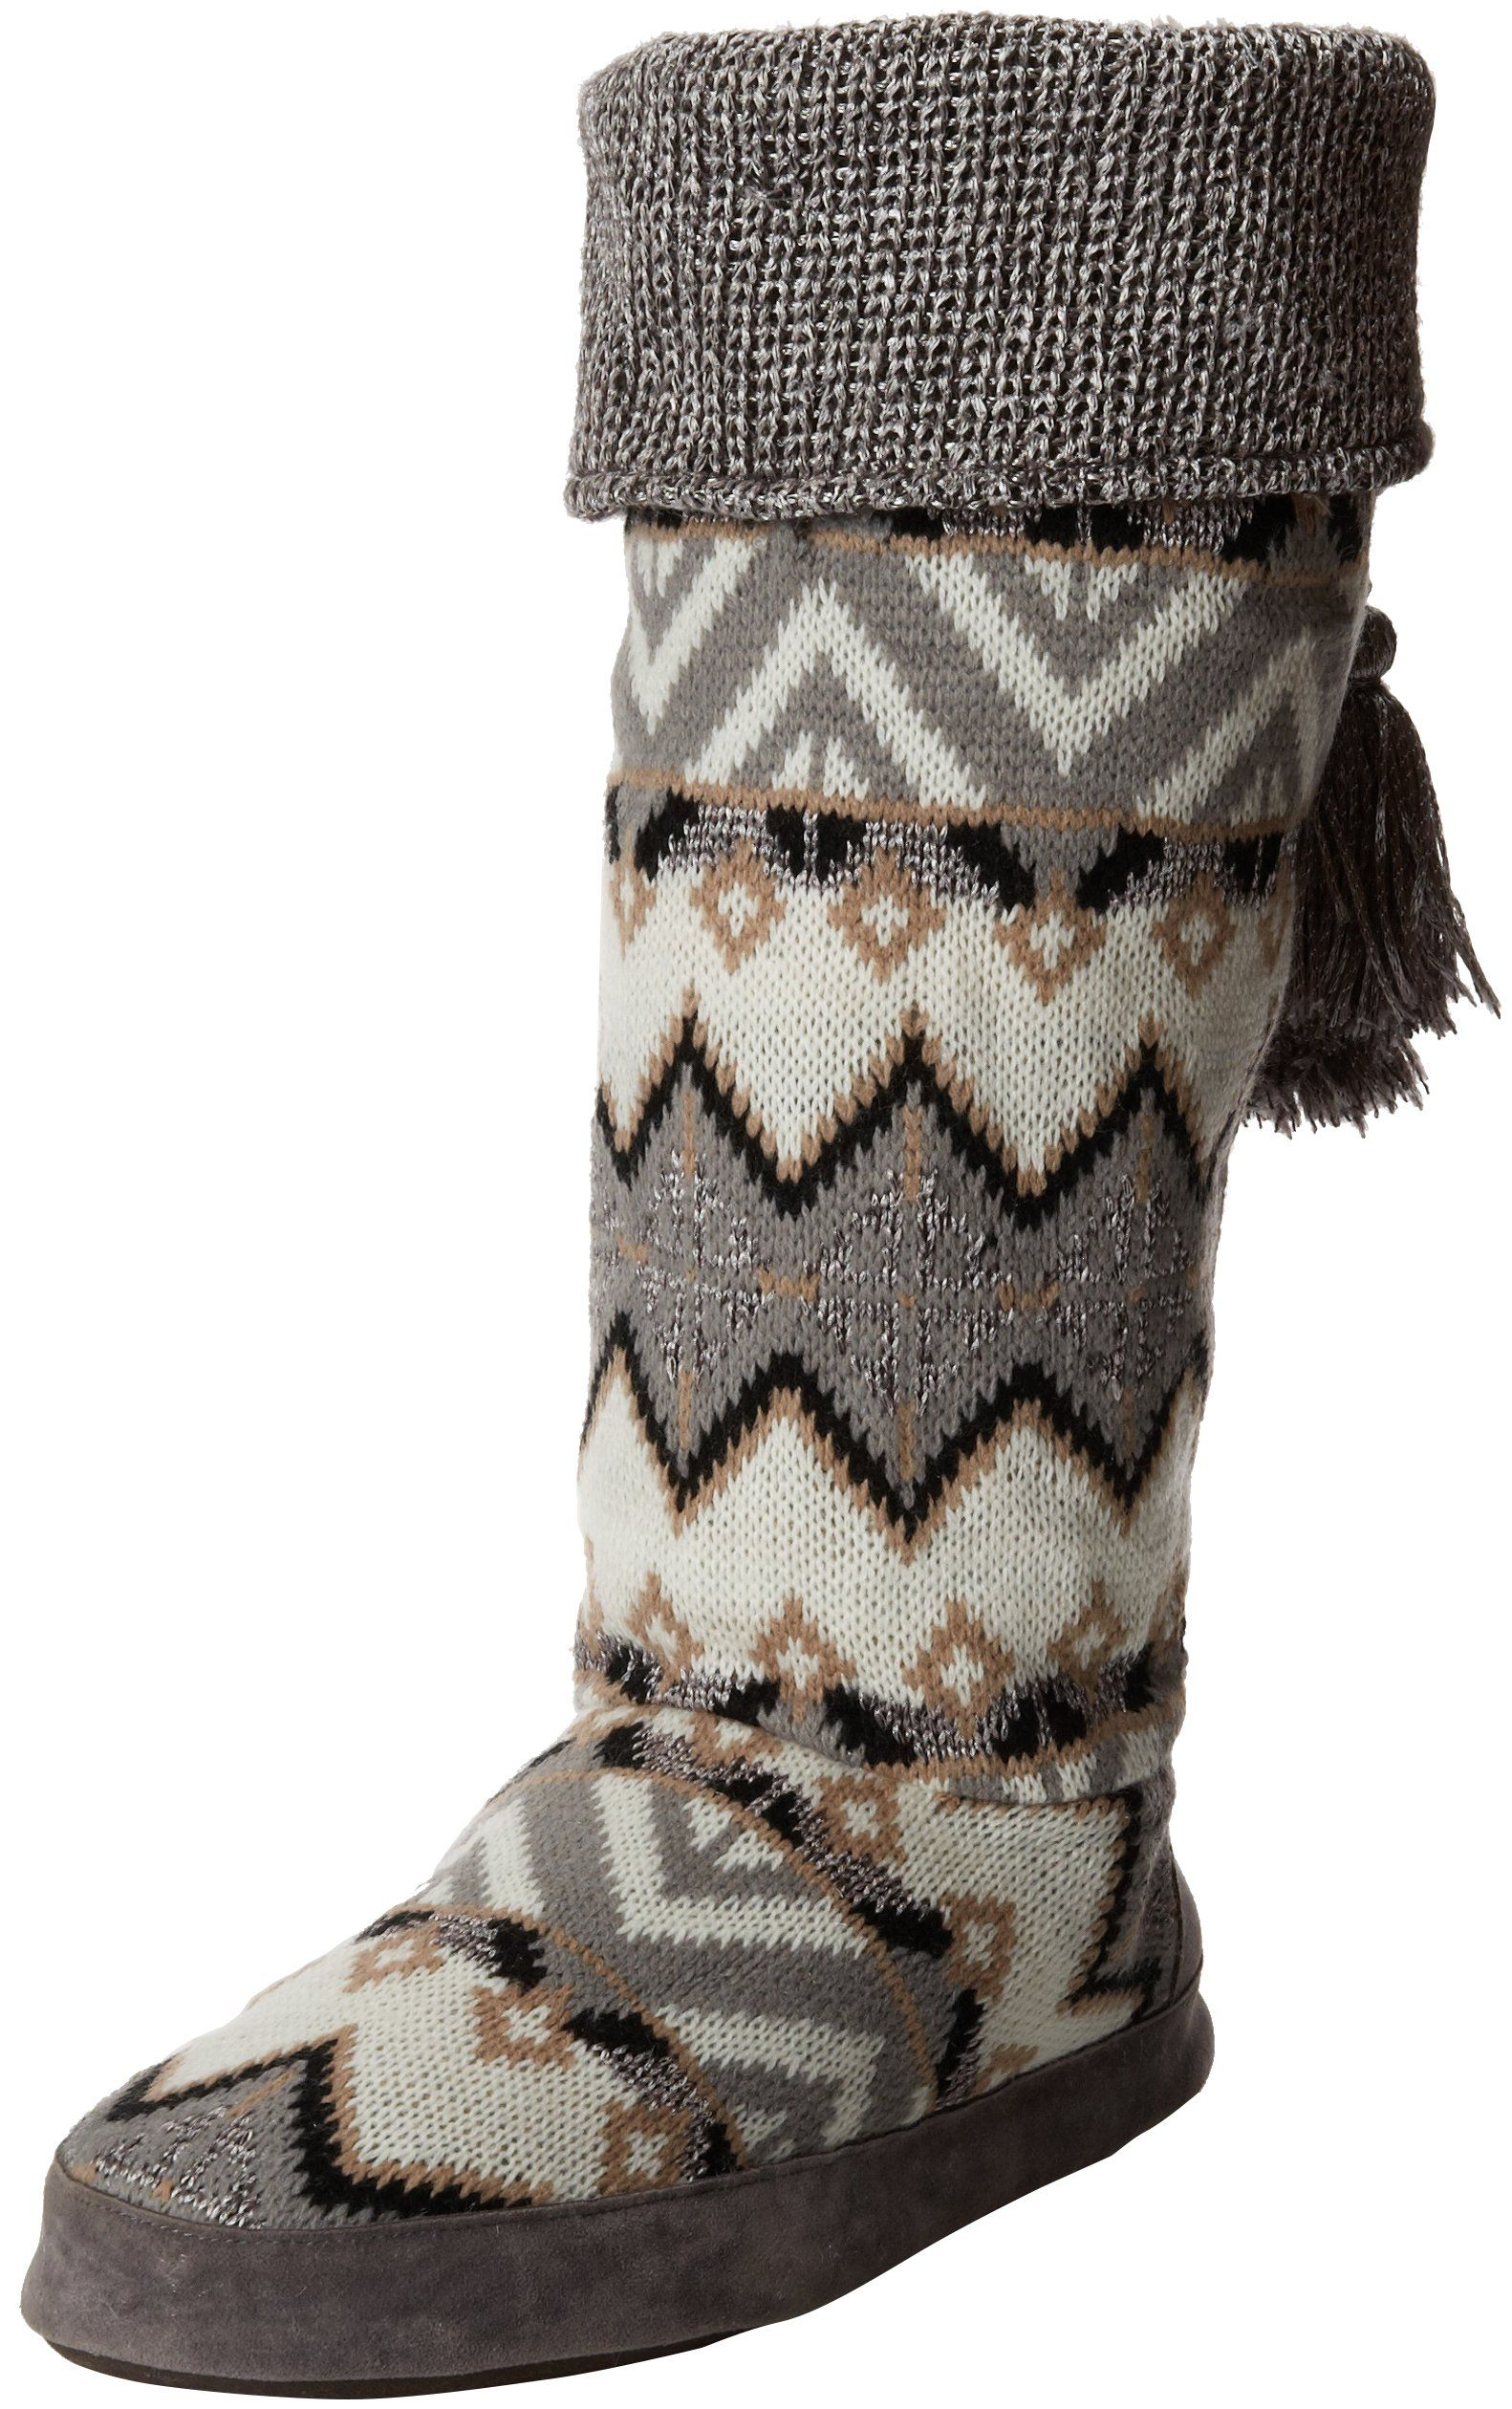 Muk Luks Women's Winona Sequence Tall Slipper Boot, X-Large